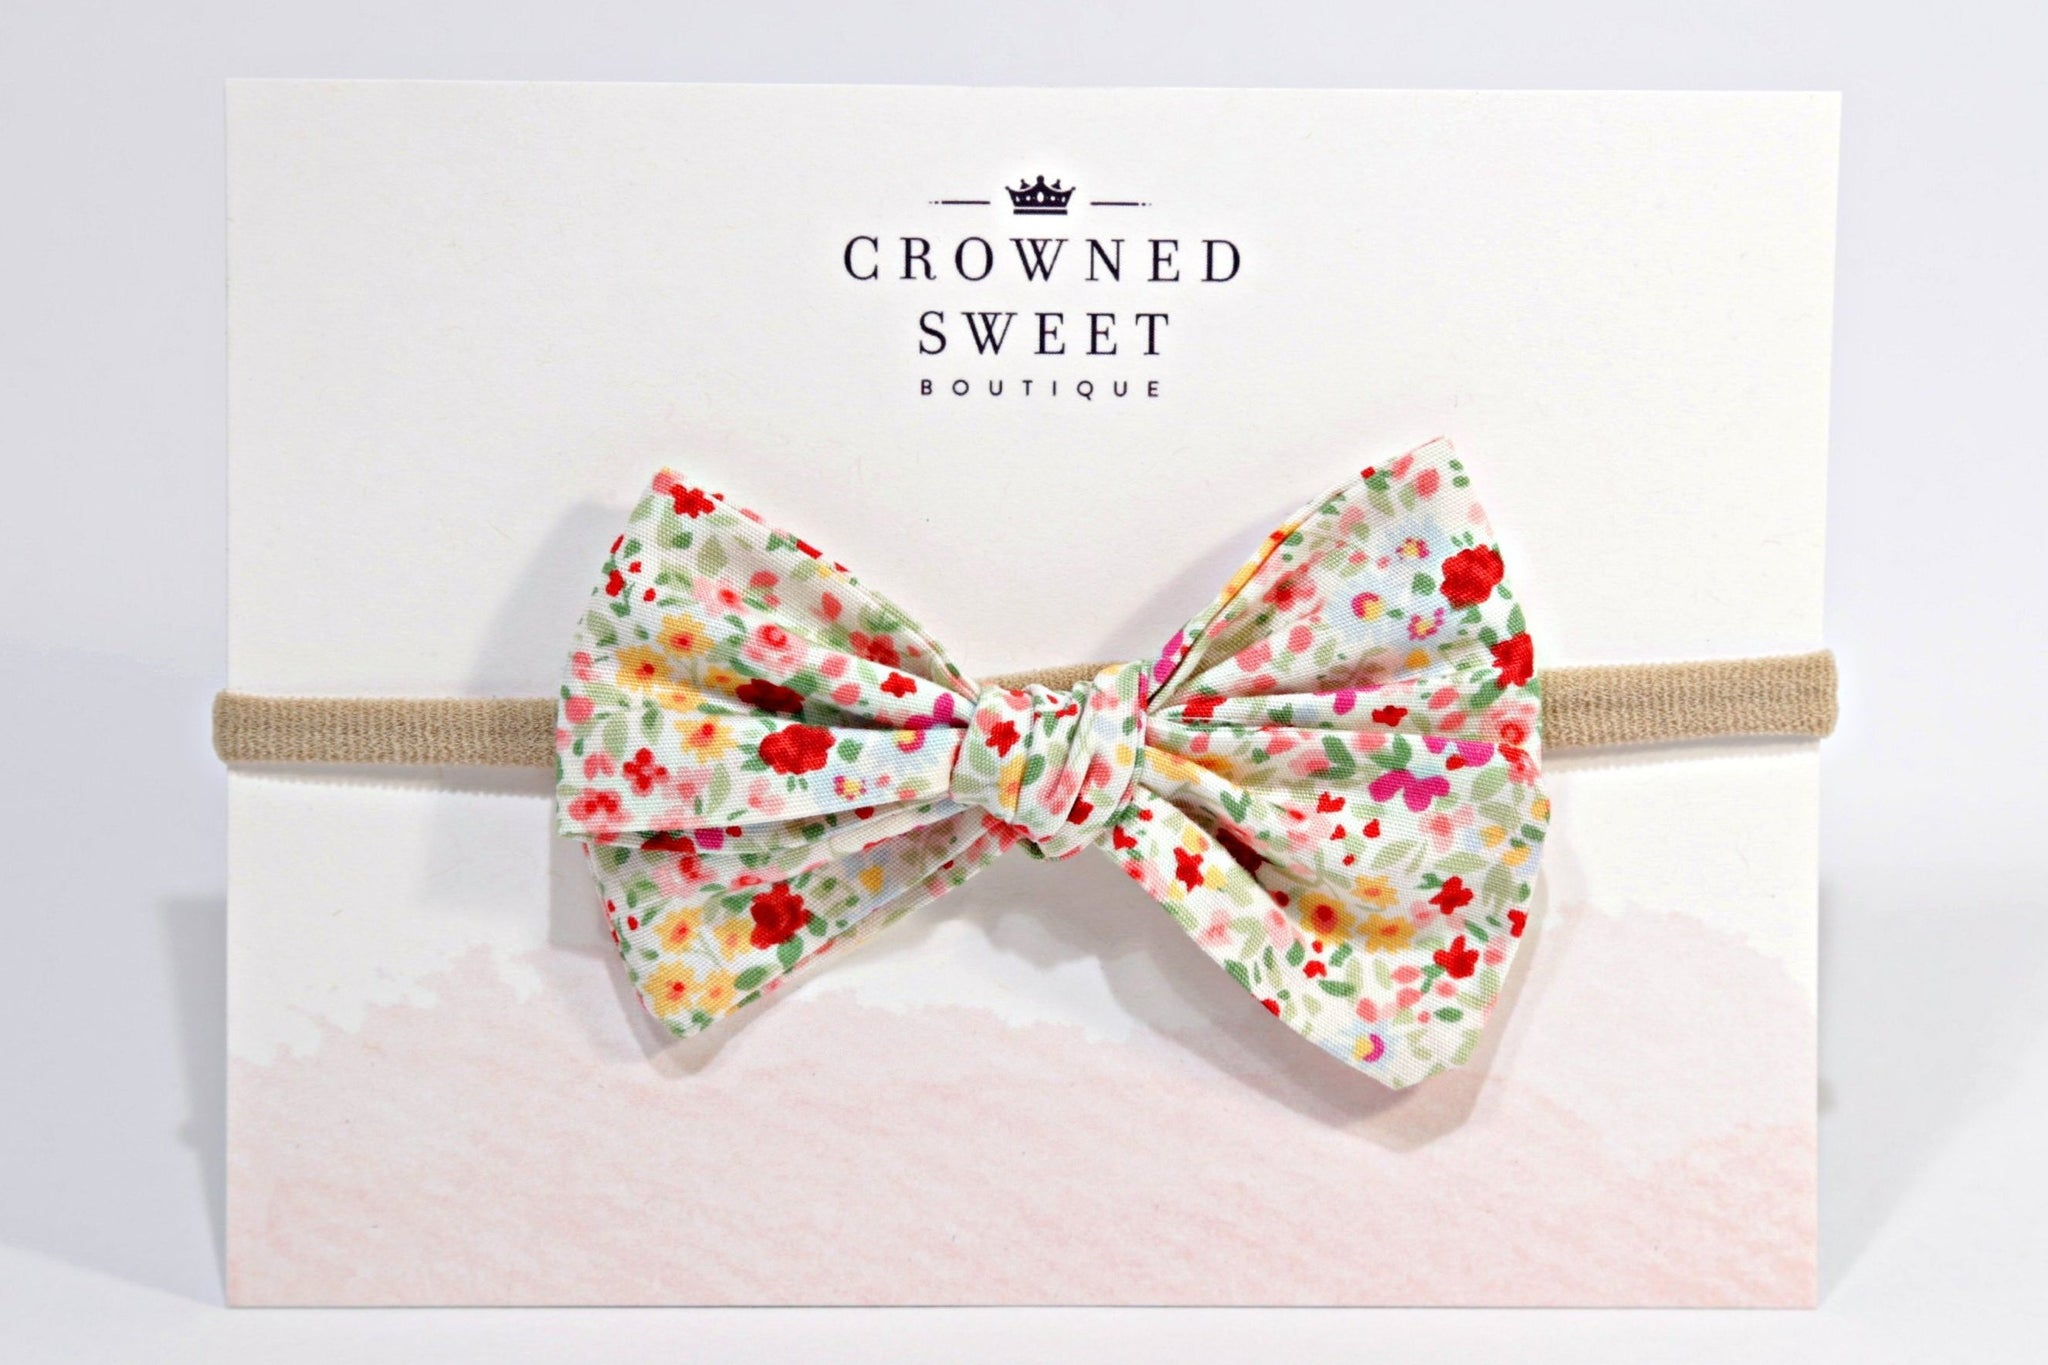 Baby headband with a pink, yellow and green pattern floral bow mounted on its card stock packaging with Crowned Sweet Boutique written top and centre on the cardstock.